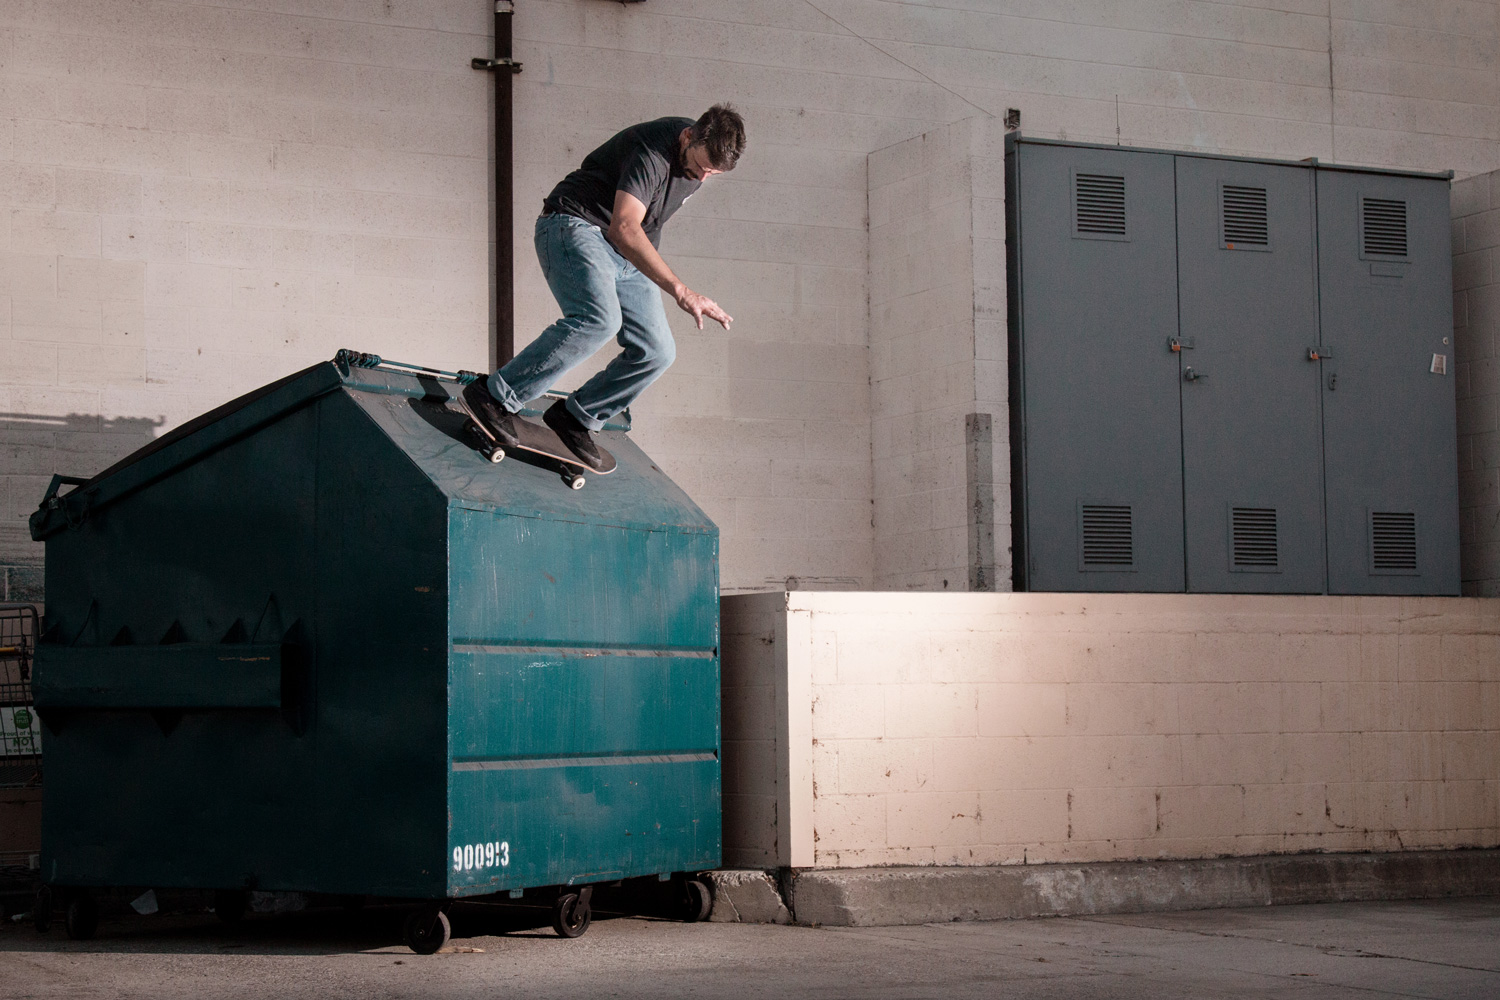 Juan Ignacio Finos - Ollie into the dumper